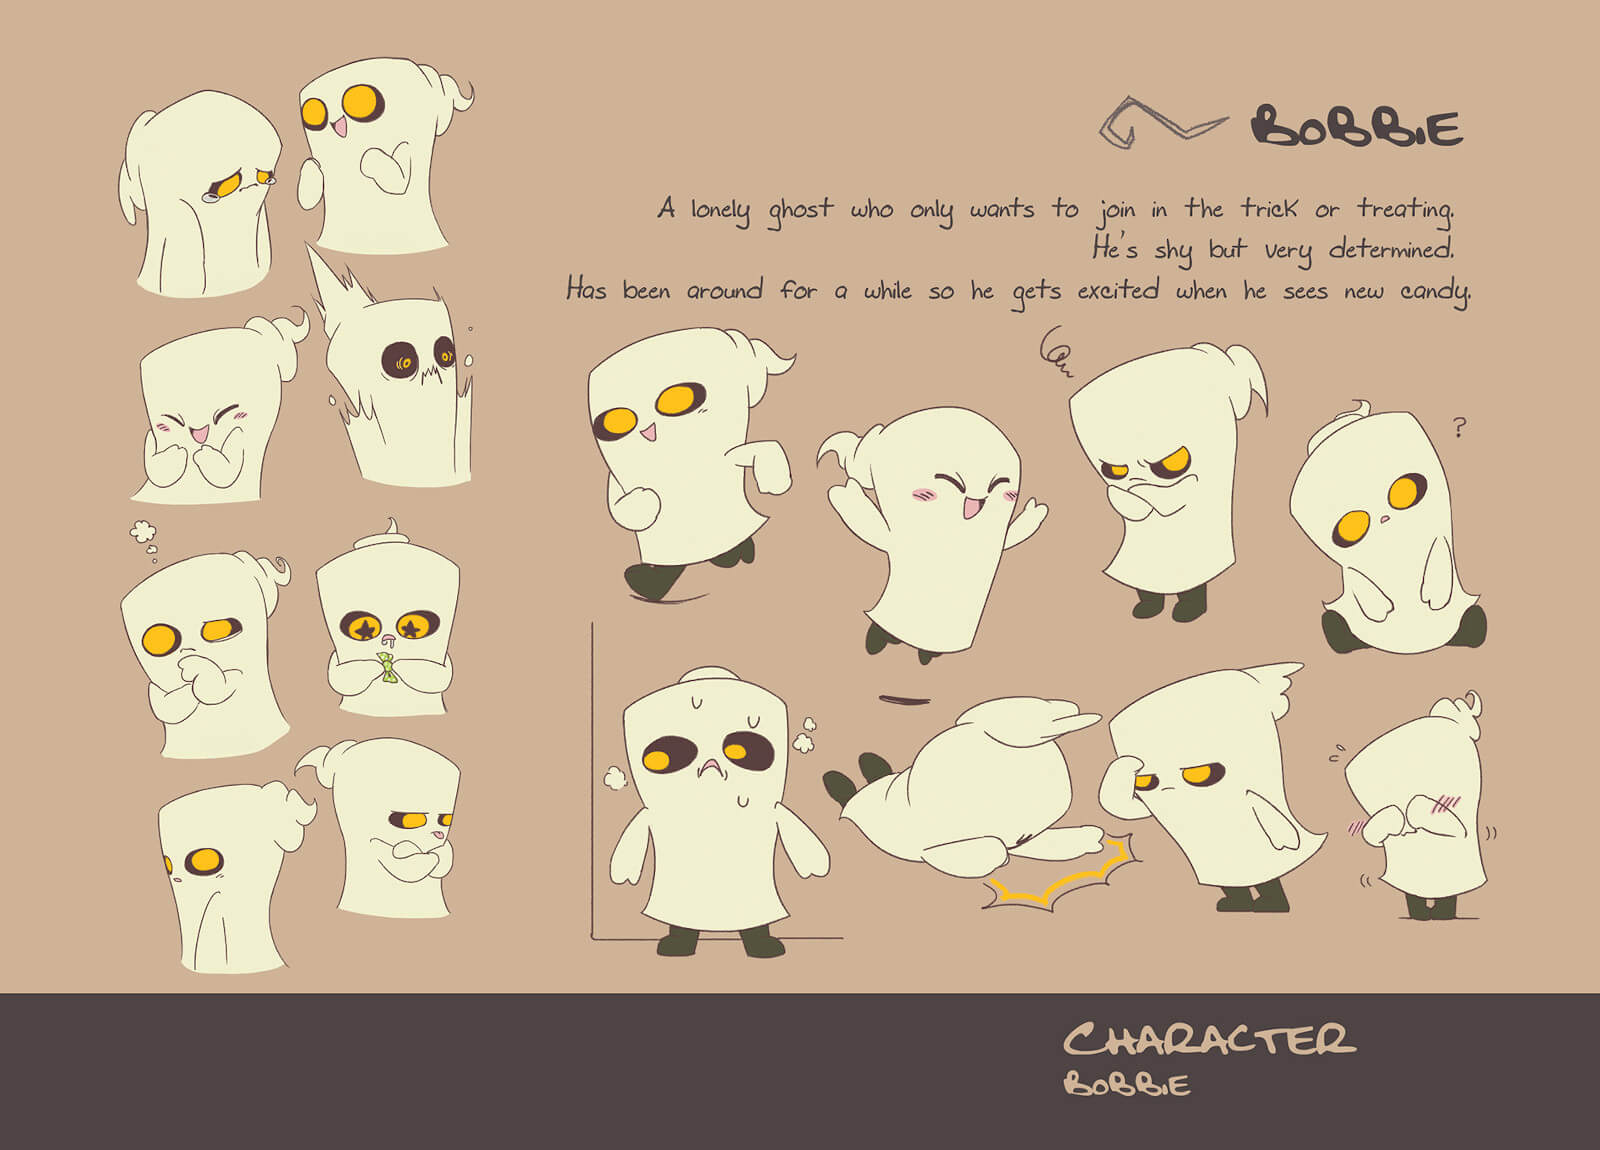 Character art for Bobbie the ghost child